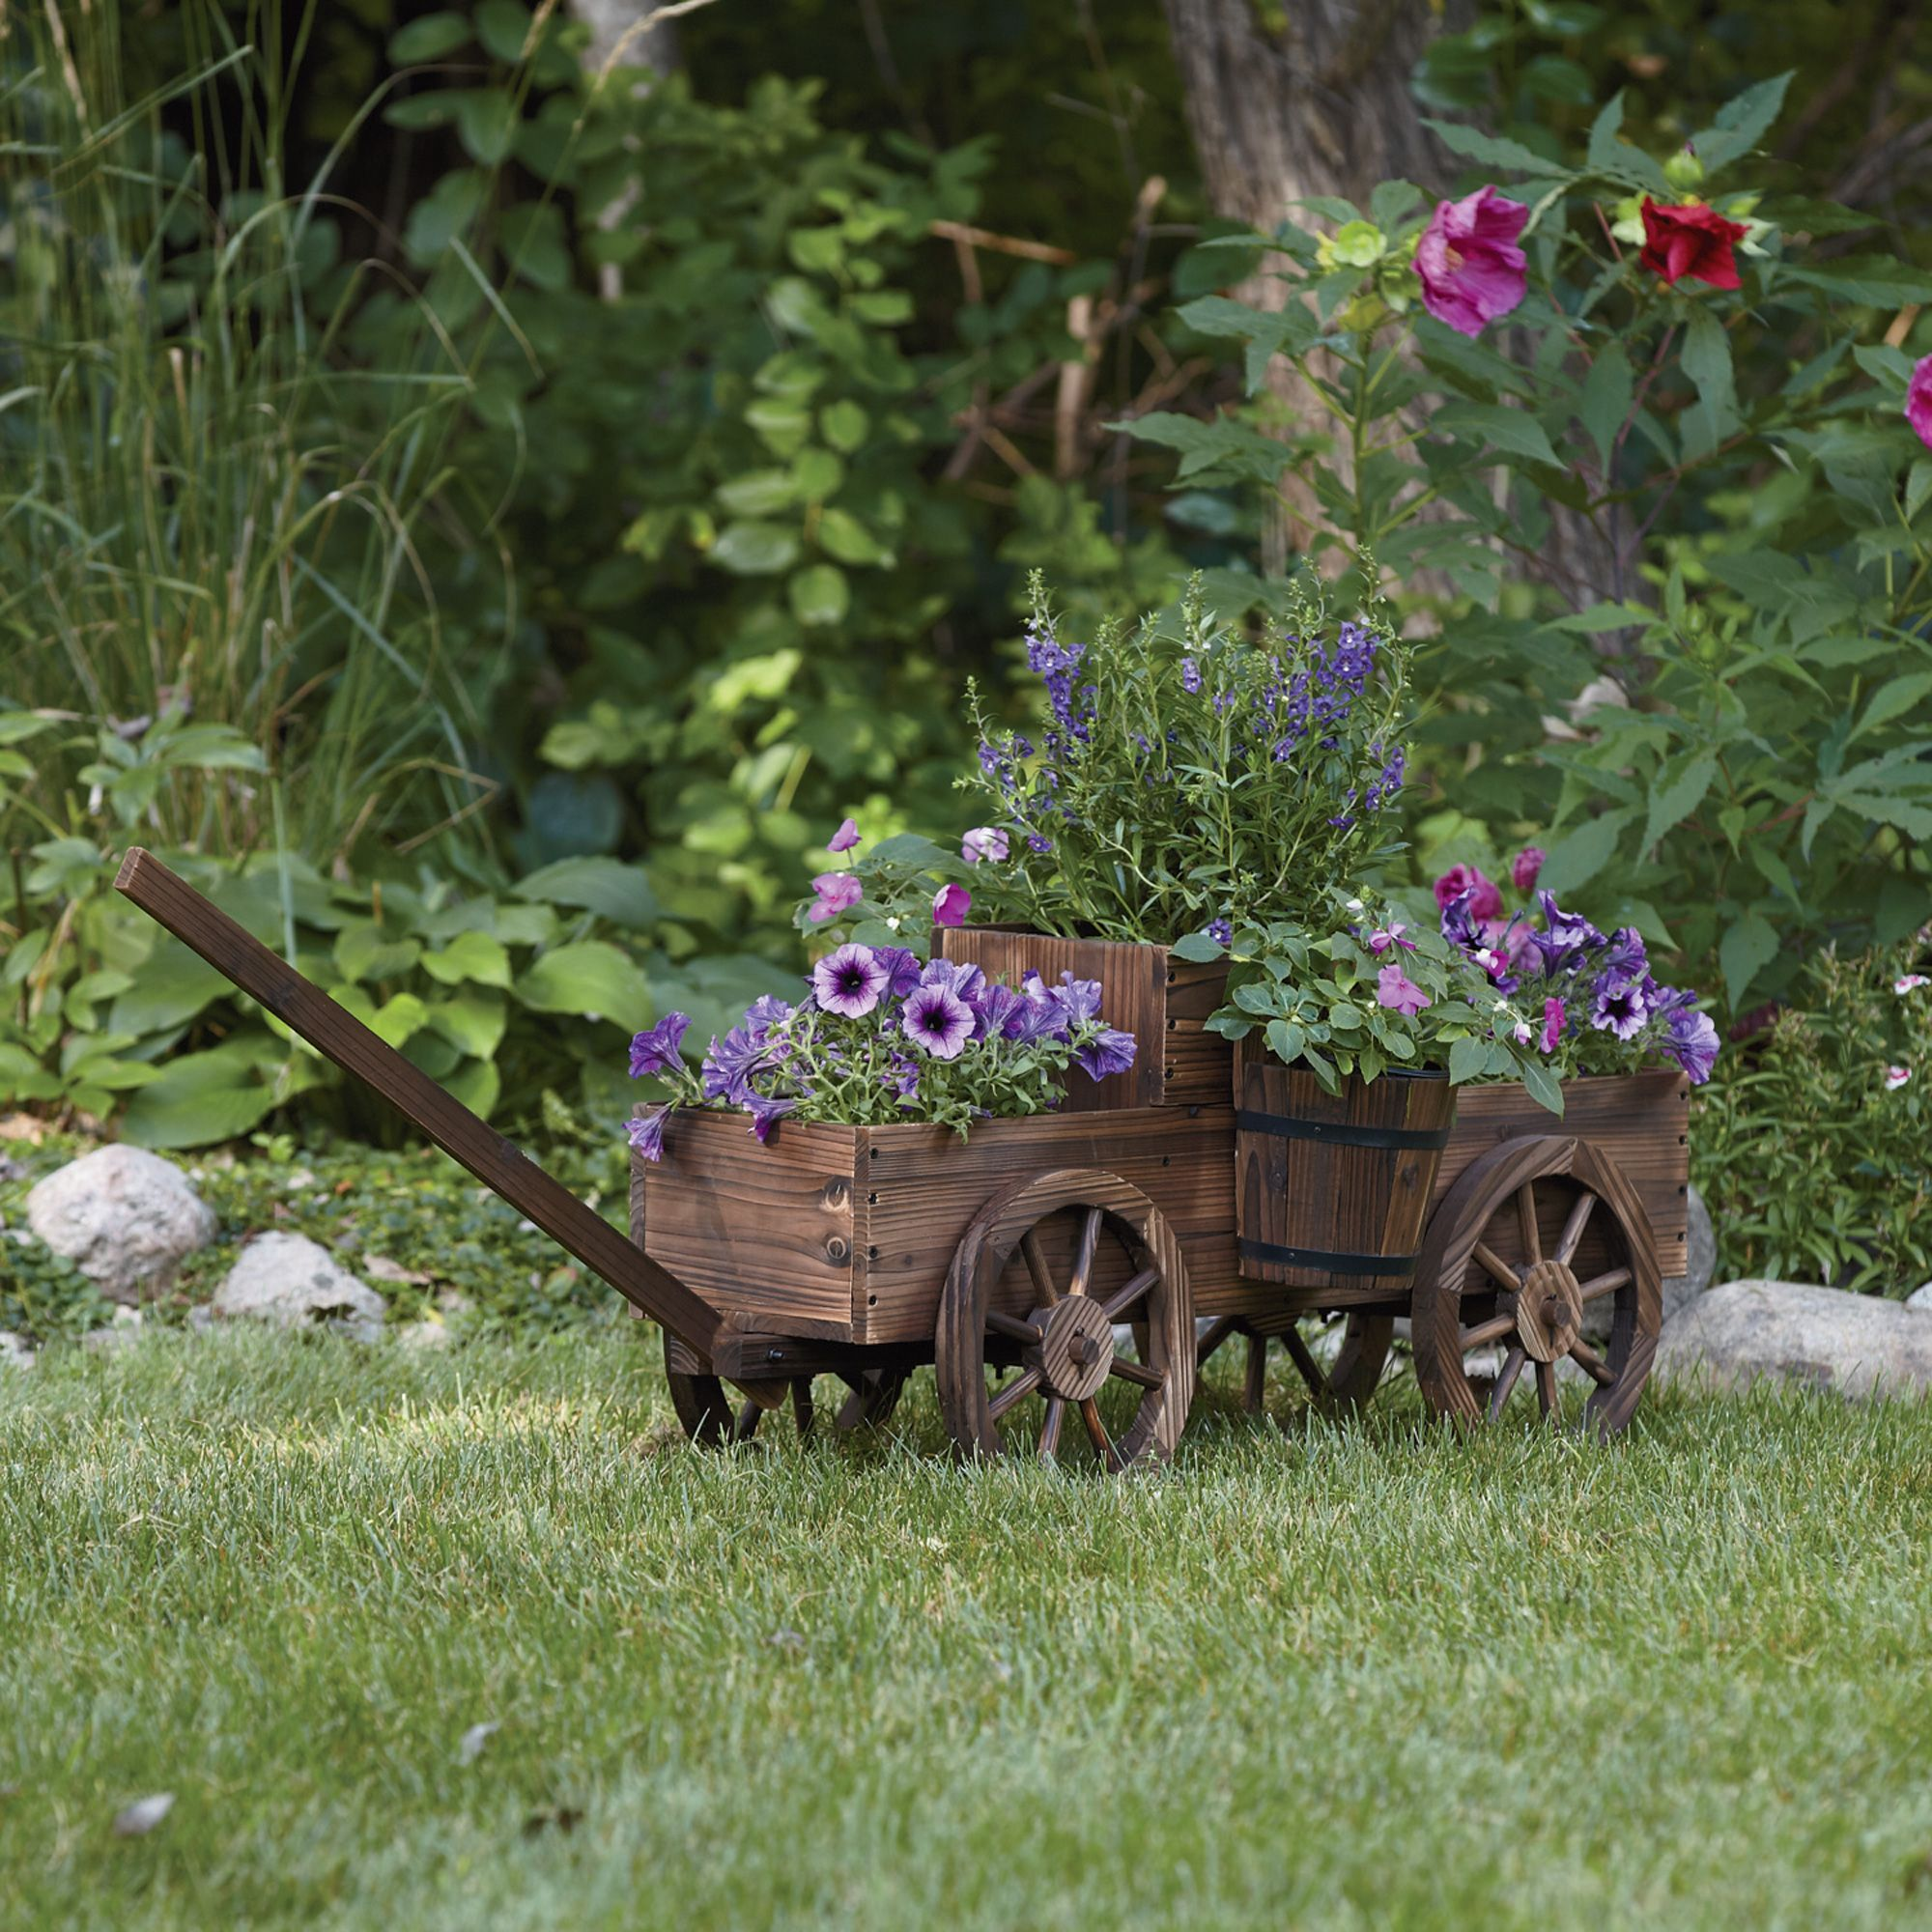 2 Tiered Wooden Wagon Garden Planter